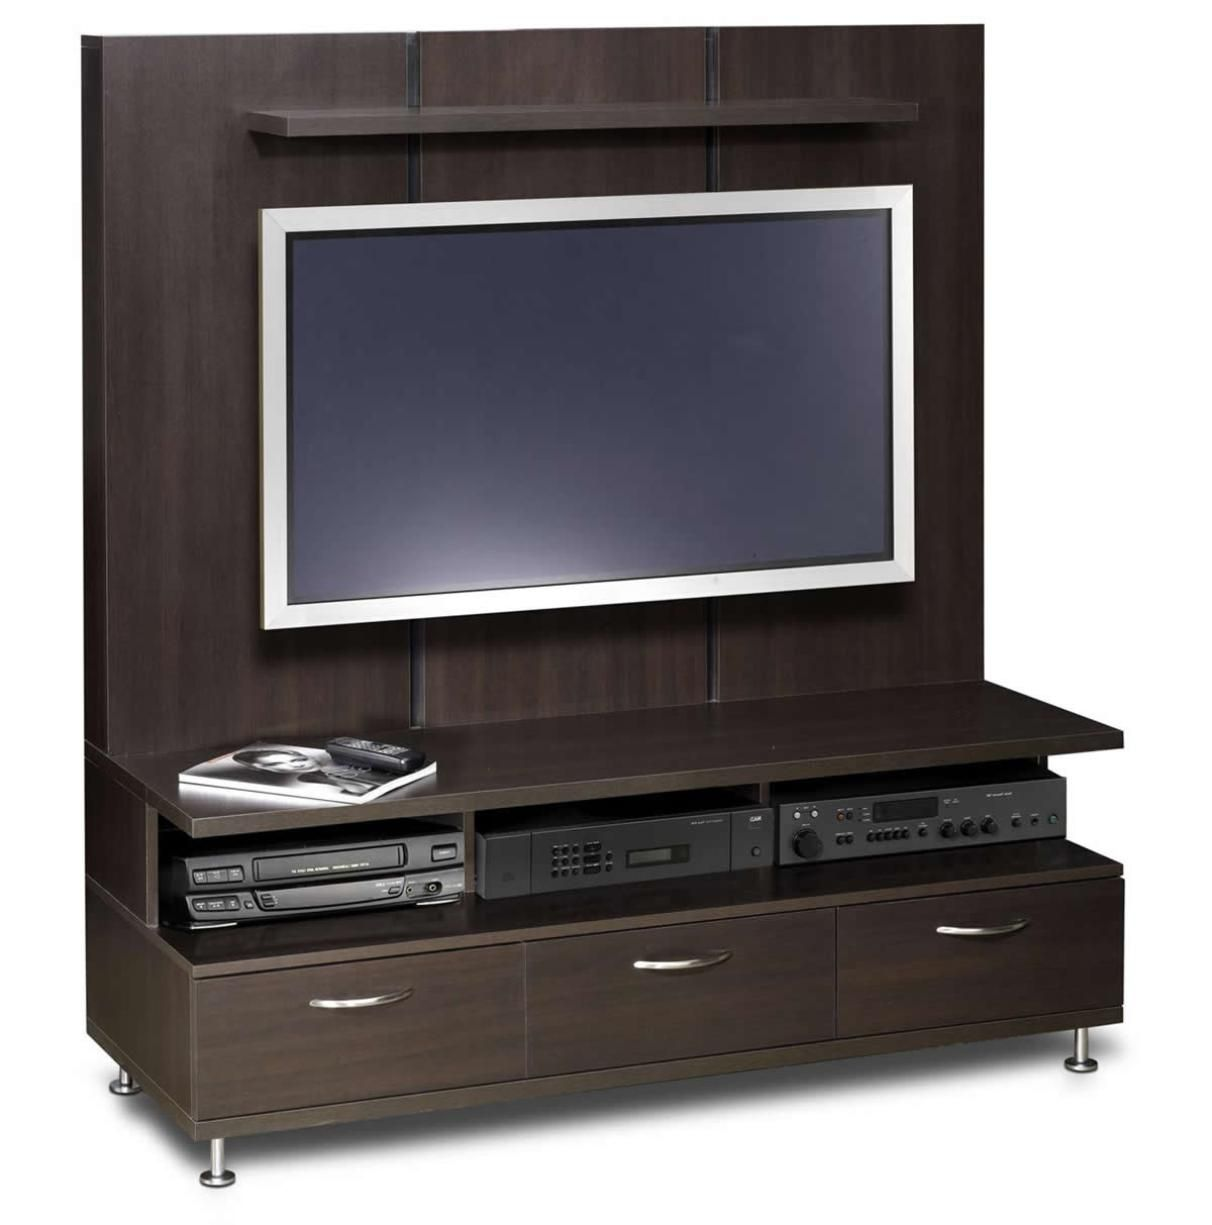 Tv Stand Designs Kerala : Woodworking plans plasma tv stand free download